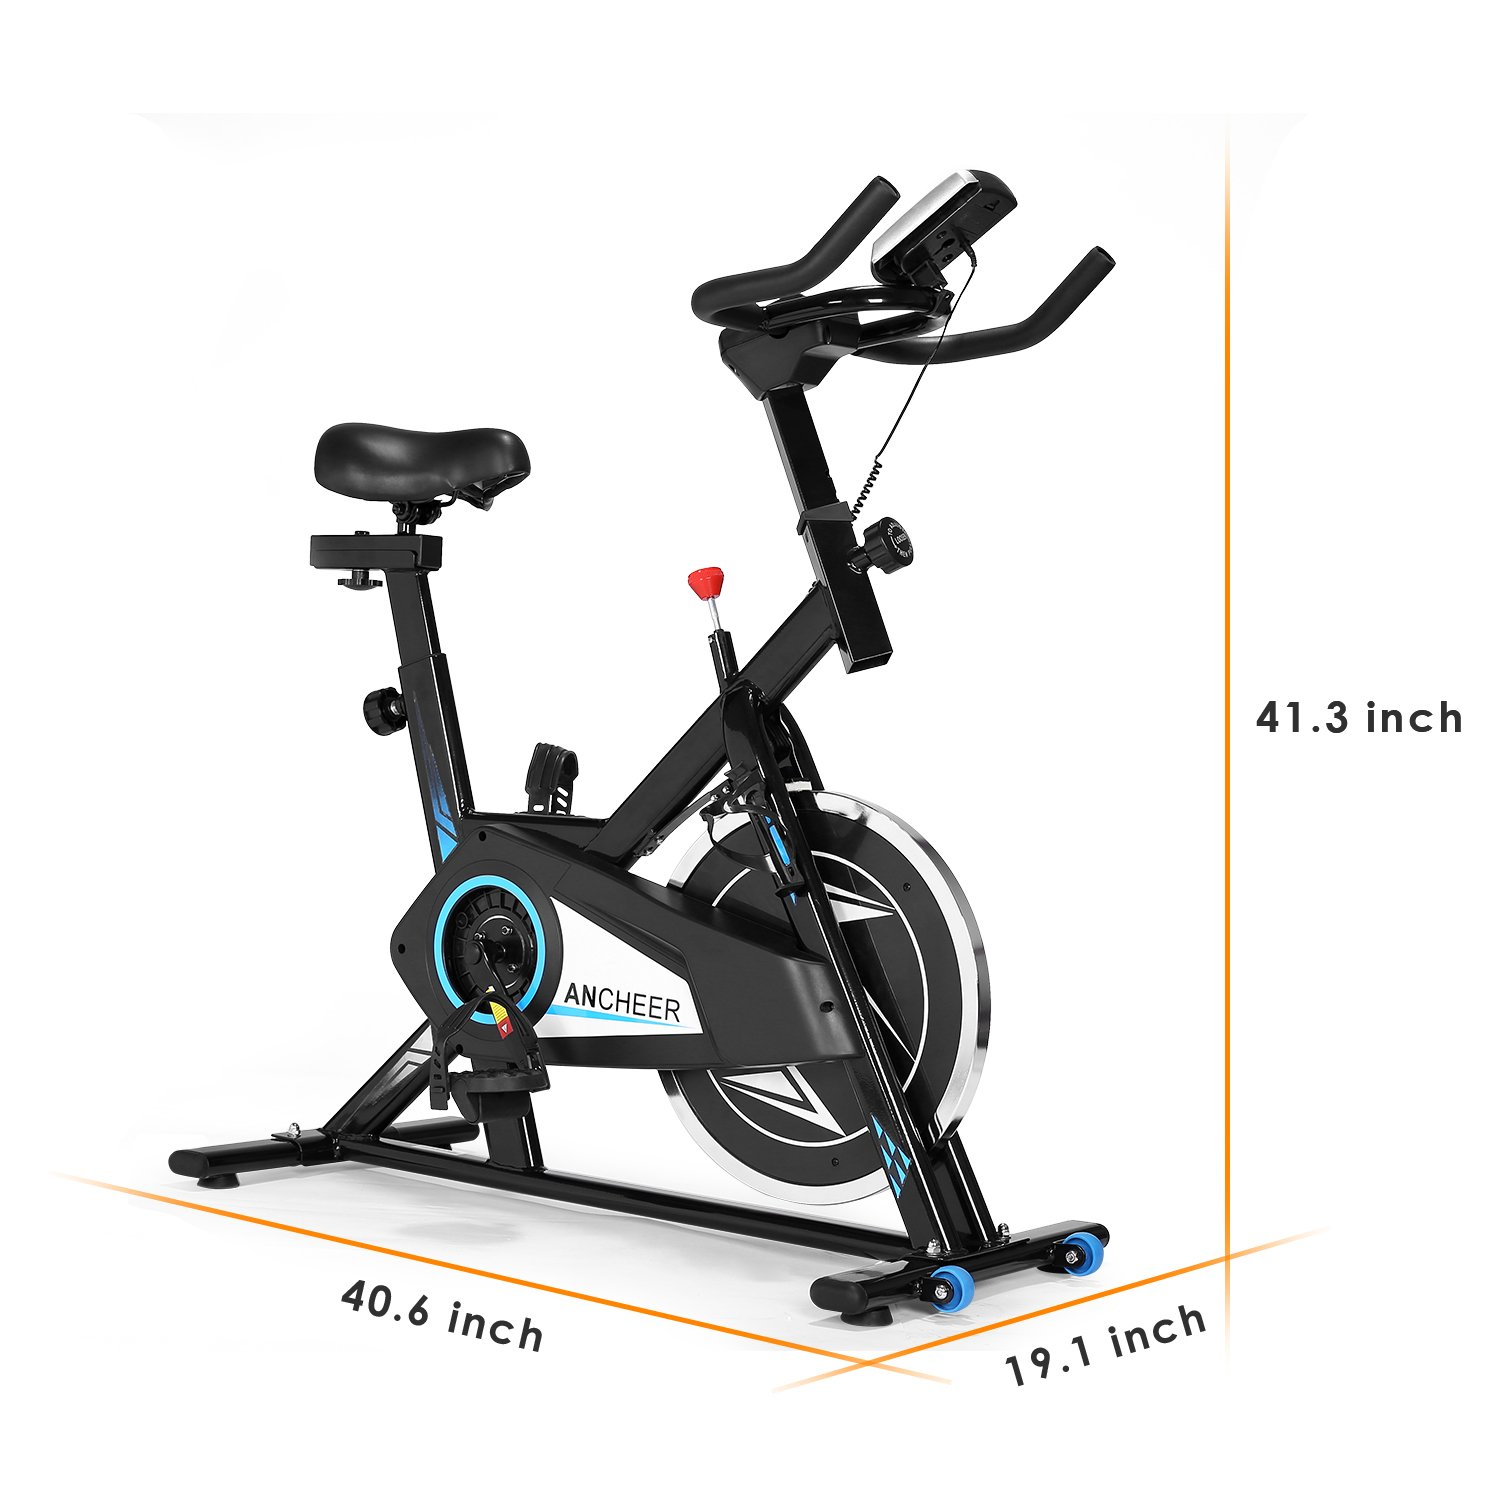 ANCHEER Indoor Cycling Bike, Smooth Quiet Belt Drive Indoor Stationary Exercise Bike